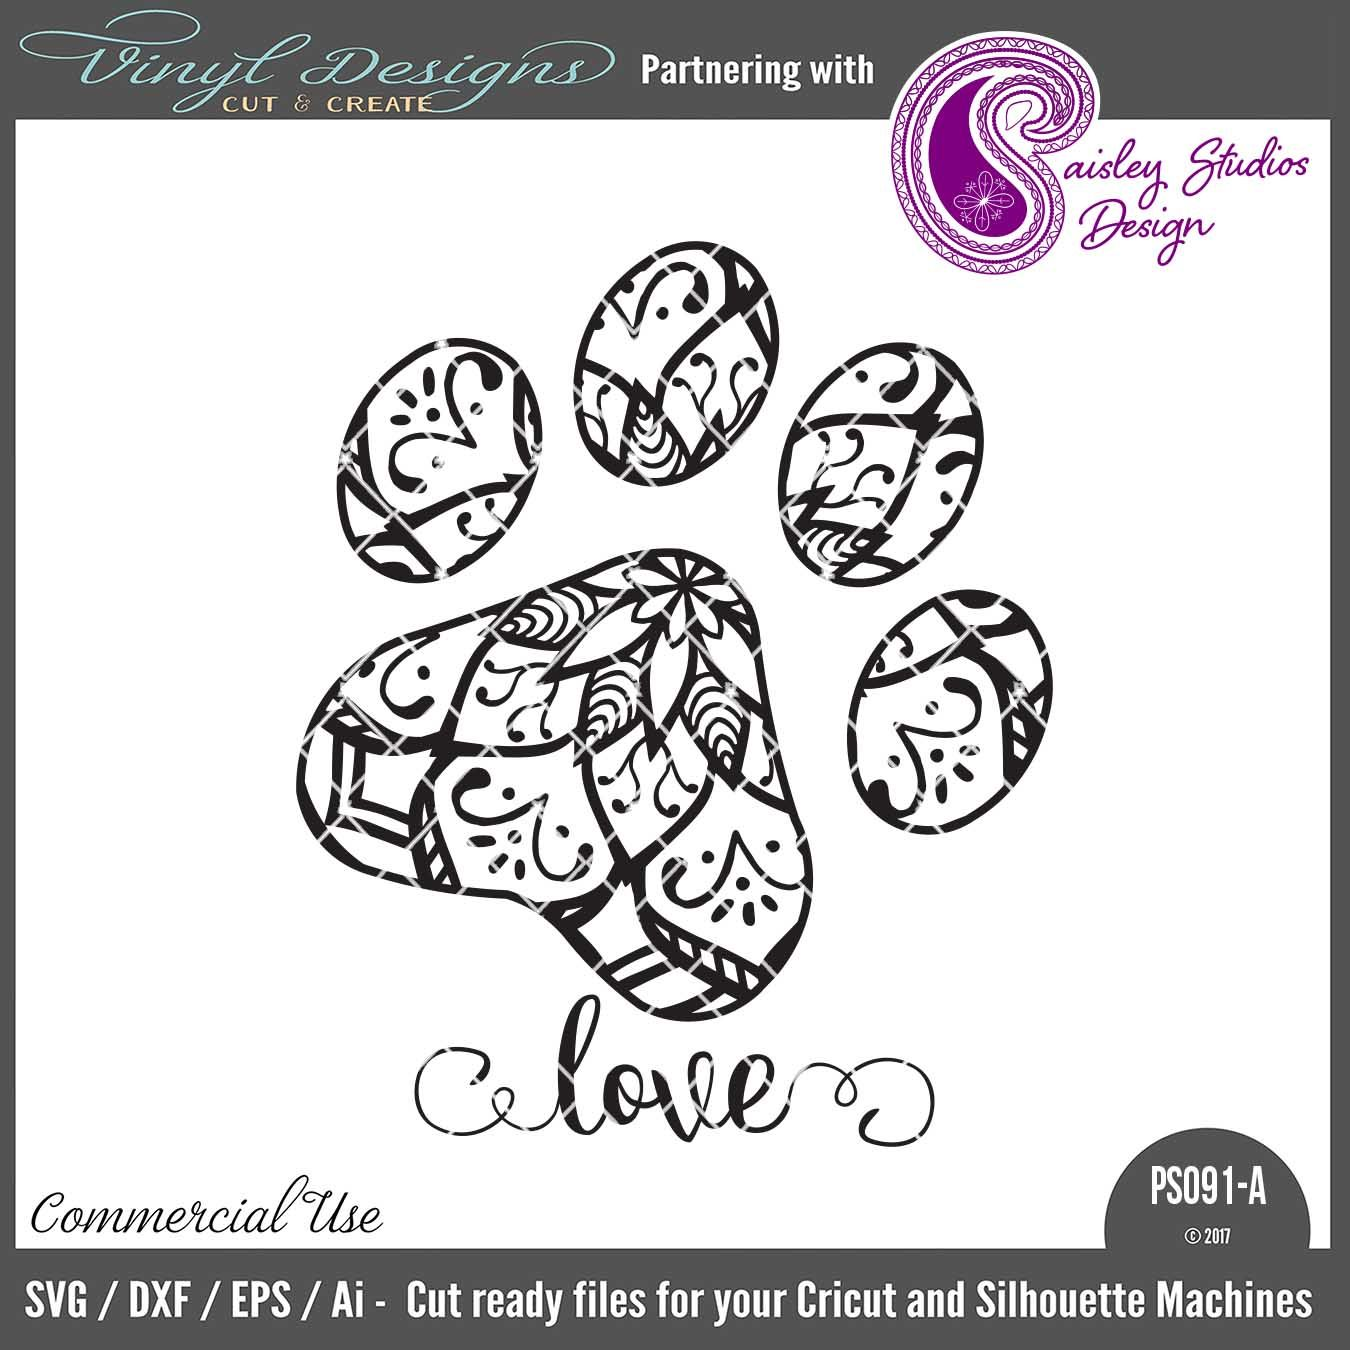 PS091A Cat Paw Print Mandala. Sold By Paisley Studios DesignSmall Business  Commercial UseAvailable In SVG